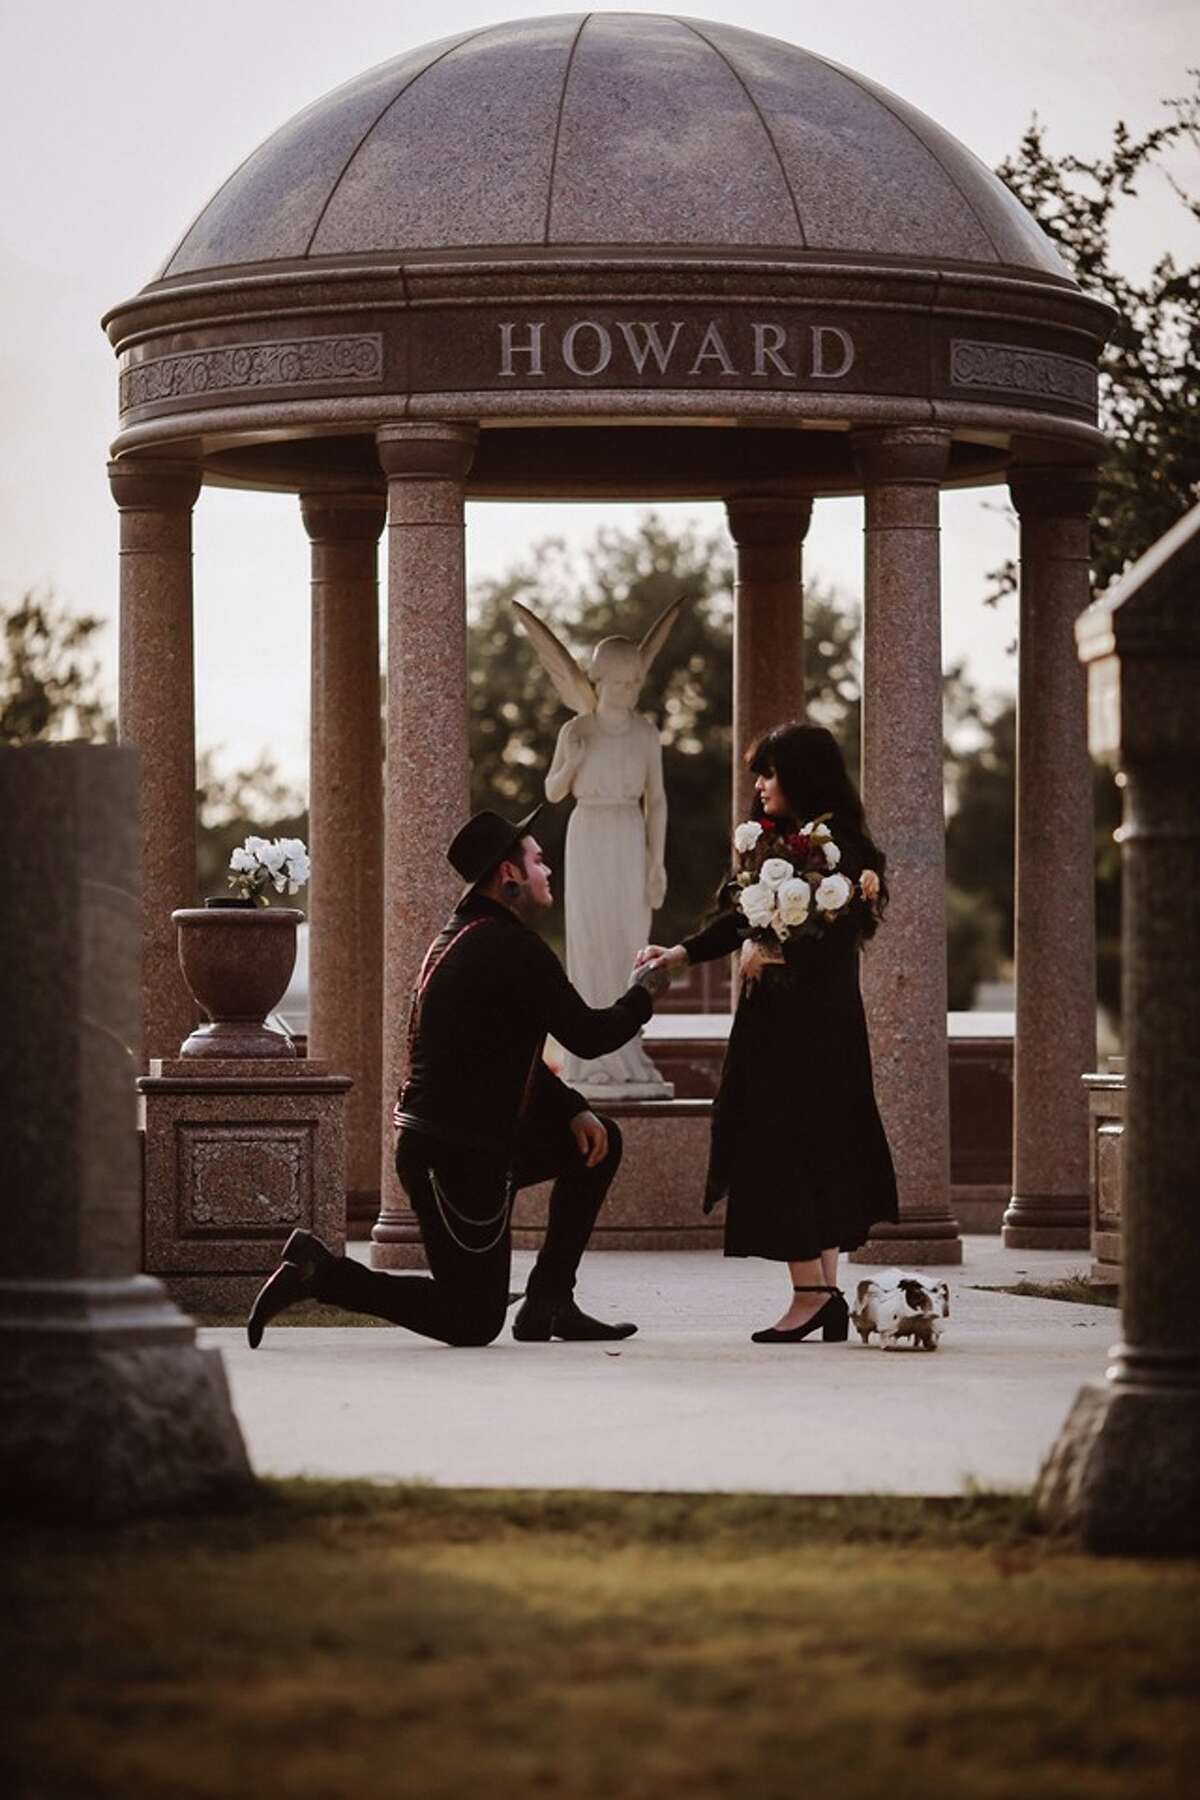 Blossom Morales and her soon-to-be husband Zachery Purser worked with local photographer Savannah Saunders to create a collection of photos to reflect the love they share for each other and the macabre. Morales said Saunders, of Photography by Savannah B, was just as enthused as the couple to conjure up their deadly idea, at Mission Park's cemetery near the Dominion.